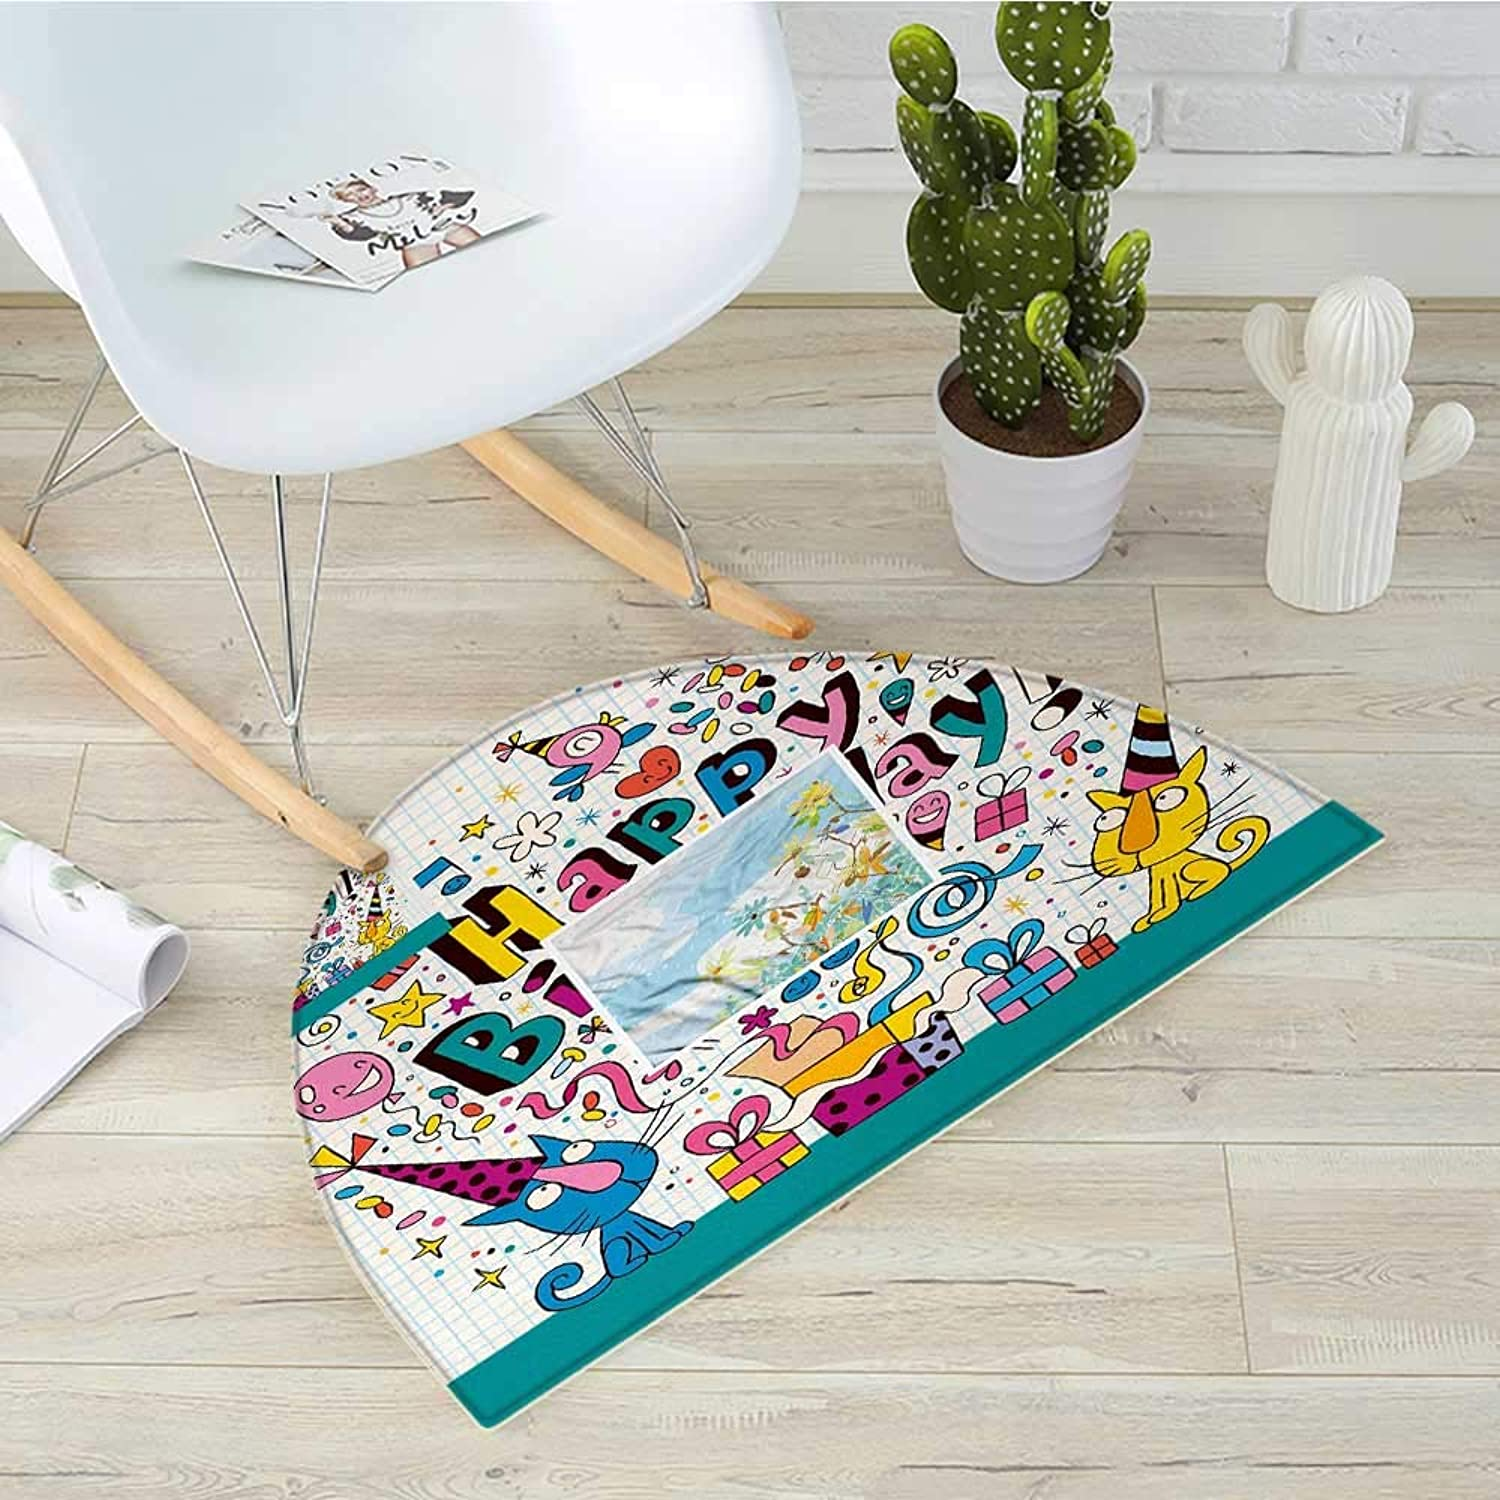 Kids Birthday Semicircle Doormat Math Note Pad Inspired Design Cartoon Style Animals Cats Present Image Halfmoon doormats H 39.3  xD 59  bluee and White